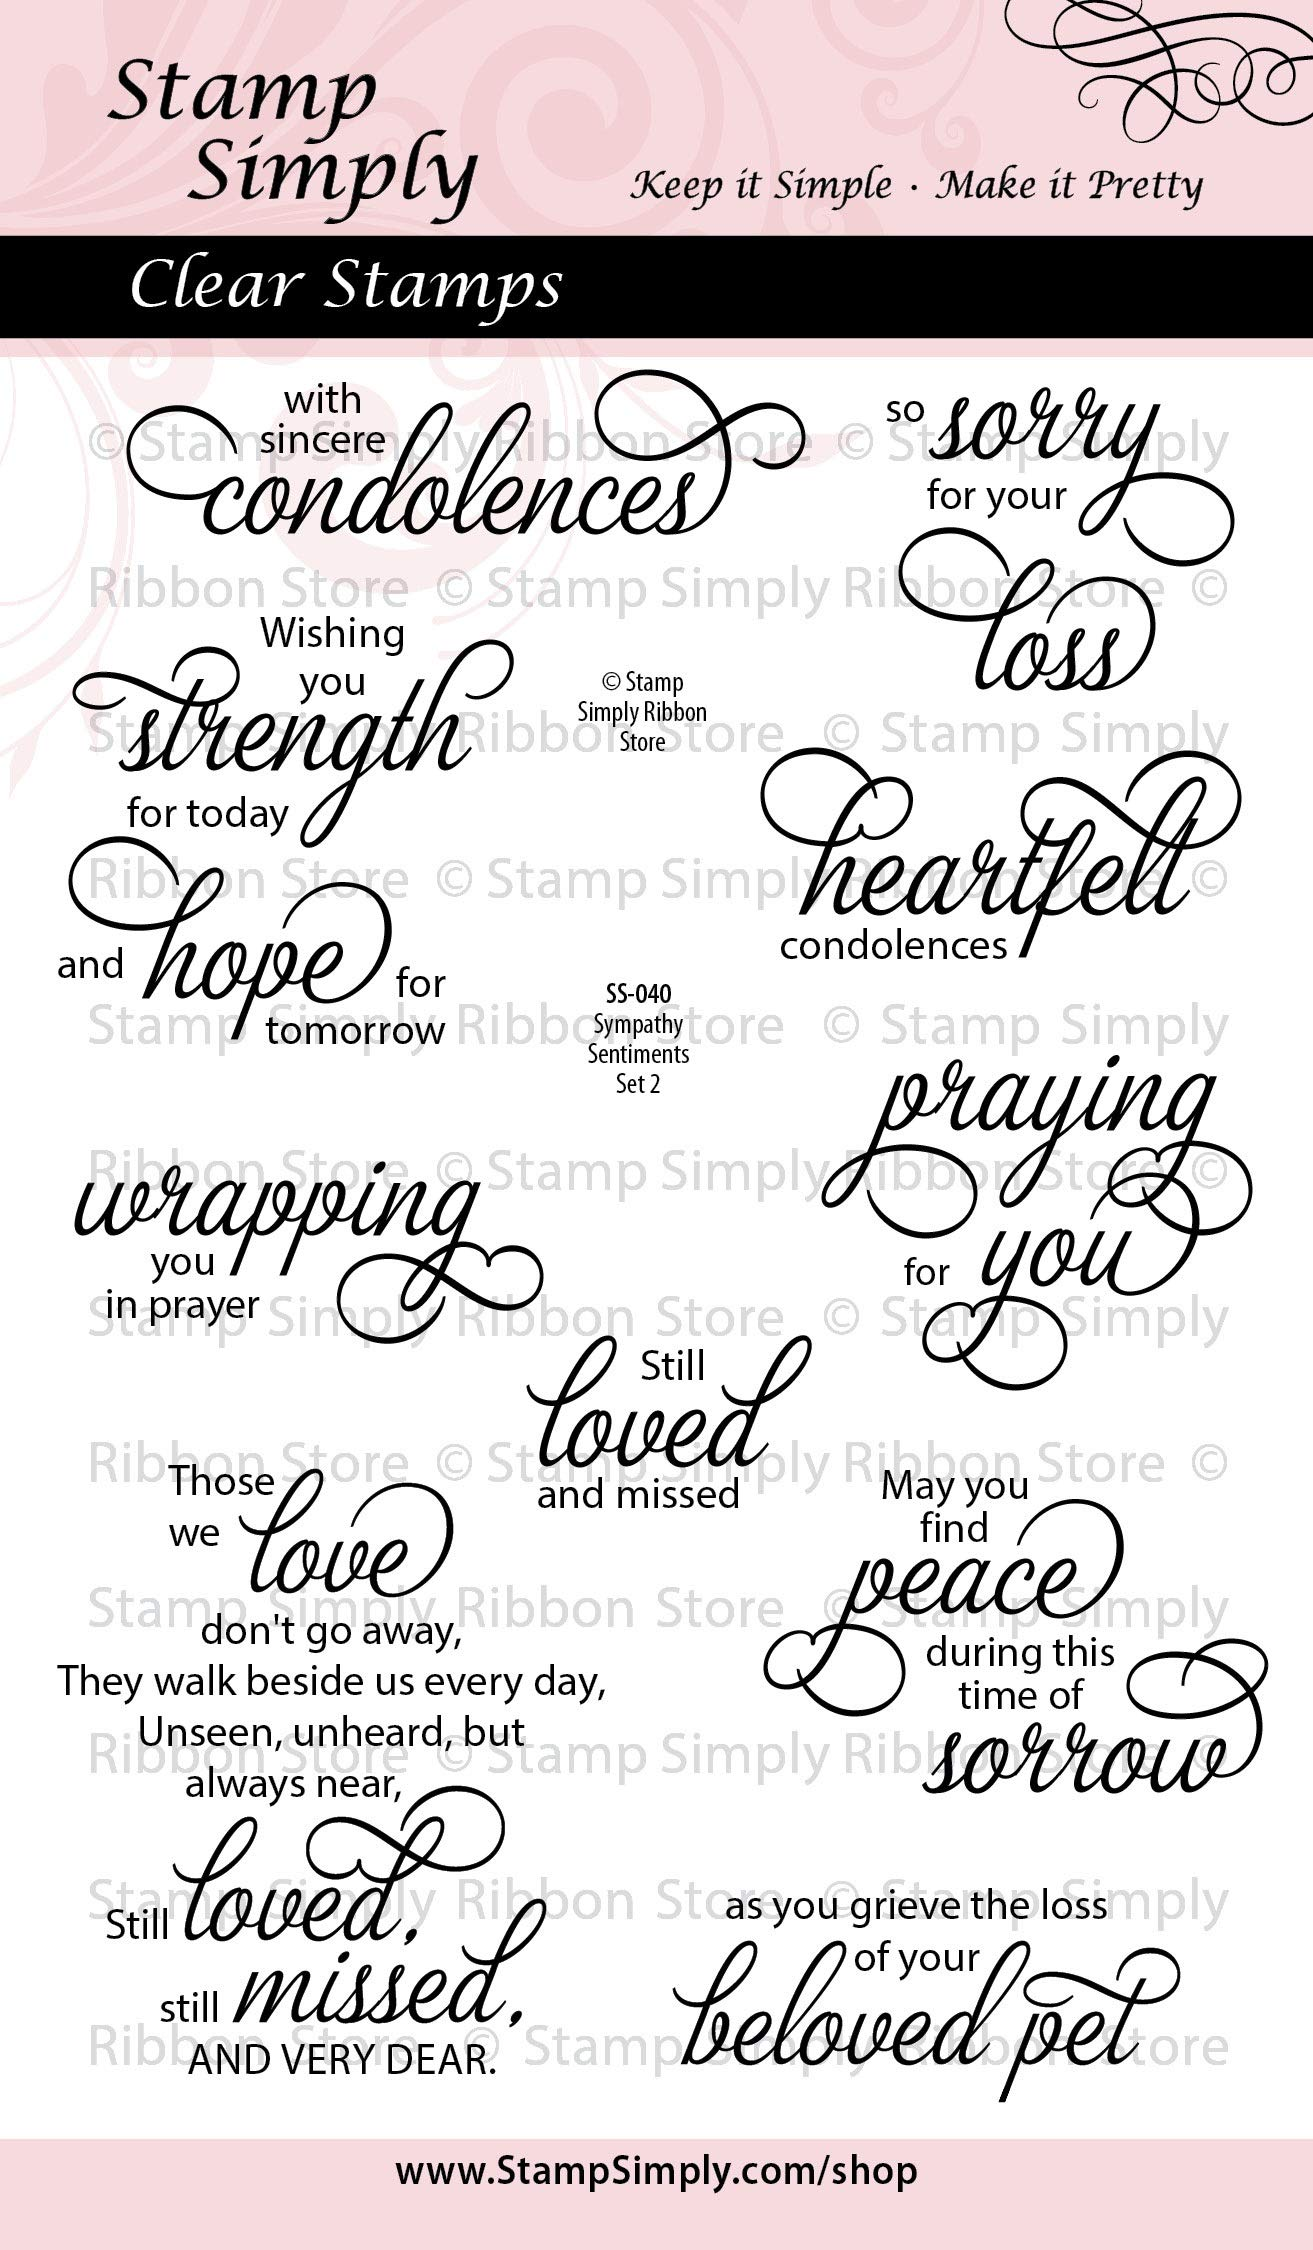 Stamp Simply Clear Stamps Sympathy Sentiments Set Two Christian Religious Loss of a Pet 4x6 Inch Sheets - 10 Pieces